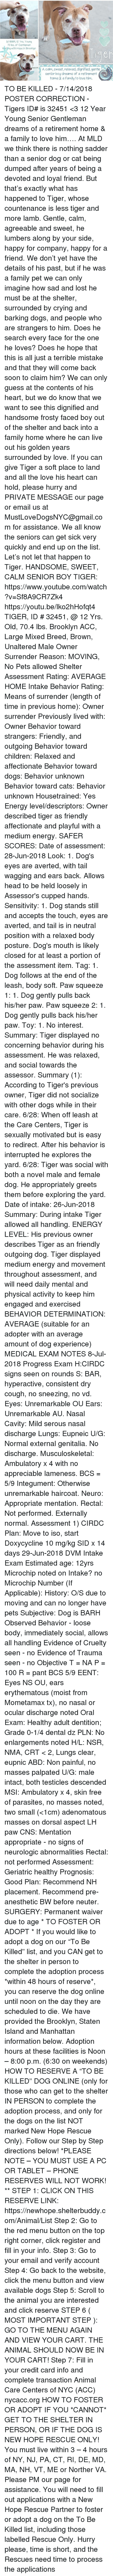 "Anaconda, Cats, and Children: Id 18889, 12 Yrs. Young  70 lbs. of Gentleman  iting with Hope in Brooklyn  A calm, sweet, relaxed, dignified, gentle  senior boy dreams of a retirement  home & a family to love him TO BE KILLED - 7/14/2018  POSTER CORRECTION - Tigers ID# is 32451  <3 12 Year Young Senior Gentleman dreams of a retirement home & a family to love him….  At MLD we think there is nothing sadder than a senior dog or cat being dumped after years of being a devoted and loyal friend. But that's exactly what has happened to Tiger, whose countenance is less tiger and more lamb. Gentle, calm, agreeable and sweet, he lumbers along by your side, happy for company, happy for a friend. We don't yet have the details of his past, but if he was a family pet we can only imagine how sad and lost he must be at the shelter, surrounded by crying and barking dogs, and people who are strangers to him. Does he search every face for the one he loves? Does he hope that this is all just a terrible mistake and that they will come back soon to claim him? We can only guess at the contents of his heart, but we do know that we want to see this dignified and handsome frosty faced boy out of the shelter and back into a family home where he can live out his golden years surrounded by love. If you can give Tiger a soft place to land and all the love his heart can hold, please hurry and PRIVATE MESSAGE our page or email us at MustLoveDogsNYC@gmail.com for assistance. We all know the seniors can get sick very quickly and end up on the list. Let's not let that happen to Tiger.  HANDSOME, SWEET, CALM SENIOR BOY TIGER: https://www.youtube.com/watch?v=Sf8A9CR7Zk4 https://youtu.be/lko2hHofqt4  TIGER, ID # 32451, @ 12 Yrs. Old, 70.4 lbs.  Brooklyn ACC, Large Mixed Breed, Brown, Unaltered Male Owner Surrender Reason: MOVING, No Pets allowed Shelter Assessment Rating: AVERAGE HOME Intake Behavior Rating:  Means of surrender (length of time in previous home): Owner surrender  Previously lived with: Owner  Behavior toward strangers: Friendly, and outgoing  Behavior toward children: Relaxed and affectionate  Behavior toward dogs: Behavior unknown  Behavior toward cats: Behavior unknown  Housetrained: Yes  Energy level/descriptors: Owner described tiger as friendly affectionate and playful with a medium energy.  SAFER SCORES: Date of assessment: 28-Jun-2018  Look: 1. Dog's eyes are averted, with tail wagging and ears back. Allows head to be held loosely in Assessor's cupped hands.  Sensitivity: 1. Dog stands still and accepts the touch, eyes are averted, and tail is in neutral position with a relaxed body posture. Dog's mouth is likely closed for at least a portion of the assessment item.  Tag: 1. Dog follows at the end of the leash, body soft.  Paw squeeze 1: 1. Dog gently pulls back his/her paw.  Paw squeeze 2: 1. Dog gently pulls back his/her paw.  Toy: 1. No interest.  Summary:  Tiger displayed no concerning behavior during his assessment. He was relaxed, and social towards the assessor.  Summary (1):  According to Tiger's previous owner, Tiger did not socialize with other dogs while in their care.   6/28: When off leash at the Care Centers, Tiger is sexually motivated but is easy to redirect. After his behavior is interrupted he explores the yard.   6/28: Tiger was social with both a novel male and female dog. He appropriately greets them before exploring the yard.   Date of intake: 26-Jun-2018 Summary: During intake Tiger allowed all handling.  ENERGY LEVEL:  His previous owner describes Tiger as an friendly outgoing dog. Tiger displayed medium energy and movement throughout assessment, and will need daily mental and physical activity to keep him engaged and exercised  BEHAVIOR DETERMINATION:  AVERAGE (suitable for an adopter with an average amount of dog experience)  MEDICAL EXAM NOTES  8-Jul-2018 Progress Exam  H:CIRDC signs seen on rounds S: BAR, hyperactive, consistent dry cough, no sneezing, no vd. Eyes: Unremarkable OU Ears: Unremarkable AU. Nasal Cavity: Mild serous nasal discharge  Lungs: Eupneic U/G: Normal external genitalia. No discharge. Musculoskeletal: Ambulatory x 4 with no appreciable lameness.  BCS = 5/9 Integument: Otherwise unremarkable haircoat. Neuro: Appropriate mentation.  Rectal: Not performed. Externally normal.  Assessment 1) CIRDC  Plan:  Move to iso, start Doxycycline 10 mg/kg SID x 14 days  29-Jun-2018 DVM Intake Exam  Estimated age: 12yrs Microchip noted on Intake? no Microchip Number (If Applicable):  History: O/S due to moving and can no longer have pets  Subjective: Dog is BARH  Observed Behavior - loose body, immediately social, allows all handling  Evidence of Cruelty seen - no Evidence of Trauma seen - no  Objective   T = NA P = 100 R = pant BCS 5/9  EENT: Eyes NS OU, ears erythematous (moist from Mometamax tx), no nasal or ocular discharge noted Oral Exam: Healthy adult dentition; Grade 0-1/4 dental dz PLN: No enlargements noted H/L: NSR, NMA, CRT < 2, Lungs clear, eupnic ABD: Non painful, no masses palpated U/G: male intact, both testicles descended MSI: Ambulatory x 4, skin free of parasites, no masses noted, two small (<1cm) adenomatous masses on dorsal aspect LH paw CNS: Mentation appropriate - no signs of neurologic abnormalities Rectal: not performed  Assessment: Geriatric healthy  Prognosis: Good  Plan: Recommend NH placement. Recommend pre-anesthetic BW before neuter.  SURGERY: Permanent waiver due to age  * TO FOSTER OR ADOPT *   If you would like to adopt a dog on our ""To Be Killed"" list, and you CAN get to the shelter in person to complete the adoption process *within 48 hours of reserve*, you can reserve the dog online until noon on the day they are scheduled to die. We have provided the Brooklyn, Staten Island and Manhattan information below. Adoption hours at these facilities is Noon – 8:00 p.m. (6:30 on weekends) HOW TO RESERVE A ""TO BE KILLED"" DOG ONLINE (only for those who can get to the shelter IN PERSON to complete the adoption process, and only for the dogs on the list NOT marked New Hope Rescue Only). Follow our Step by Step directions below!   *PLEASE NOTE – YOU MUST USE A PC OR TABLET – PHONE RESERVES WILL NOT WORK! **   STEP 1: CLICK ON THIS RESERVE LINK: https://newhope.shelterbuddy.com/Animal/List  Step 2: Go to the red menu button on the top right corner, click register and fill in your info.  Step 3: Go to your email and verify account  Step 4: Go back to the website, click the menu button and view available dogs  Step 5: Scroll to the animal you are interested and click reserve  STEP 6 ( MOST IMPORTANT STEP ): GO TO THE MENU AGAIN AND VIEW YOUR CART. THE ANIMAL SHOULD NOW BE IN YOUR CART! Step 7: Fill in your credit card info and complete transaction Animal Care Centers of NYC (ACC) nycacc.org  HOW TO FOSTER OR ADOPT IF YOU *CANNOT* GET TO THE SHELTER IN PERSON, OR IF THE DOG IS NEW HOPE RESCUE ONLY!   You must live within 3 – 4 hours of NY, NJ, PA, CT, RI, DE, MD, MA, NH, VT, ME or Norther VA.   Please PM our page for assistance. You will need to fill out applications with a New Hope Rescue Partner to foster or adopt a dog on the To Be Killed list, including those labelled Rescue Only. Hurry please, time is short, and the Rescues need time to process the applications"